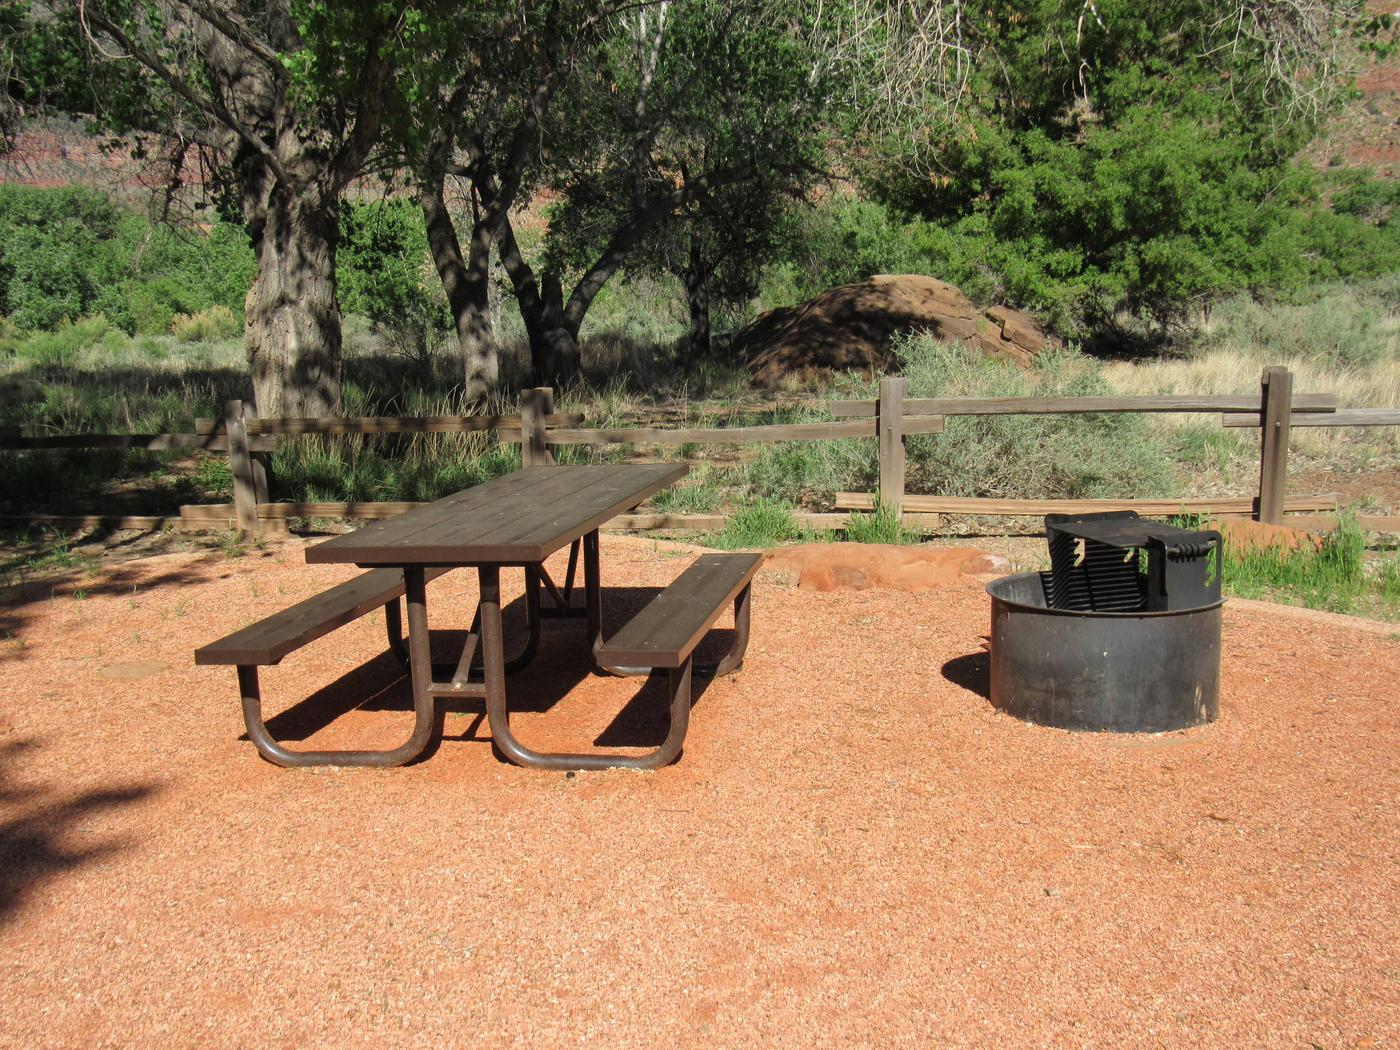 Site C14Bench and fire pit